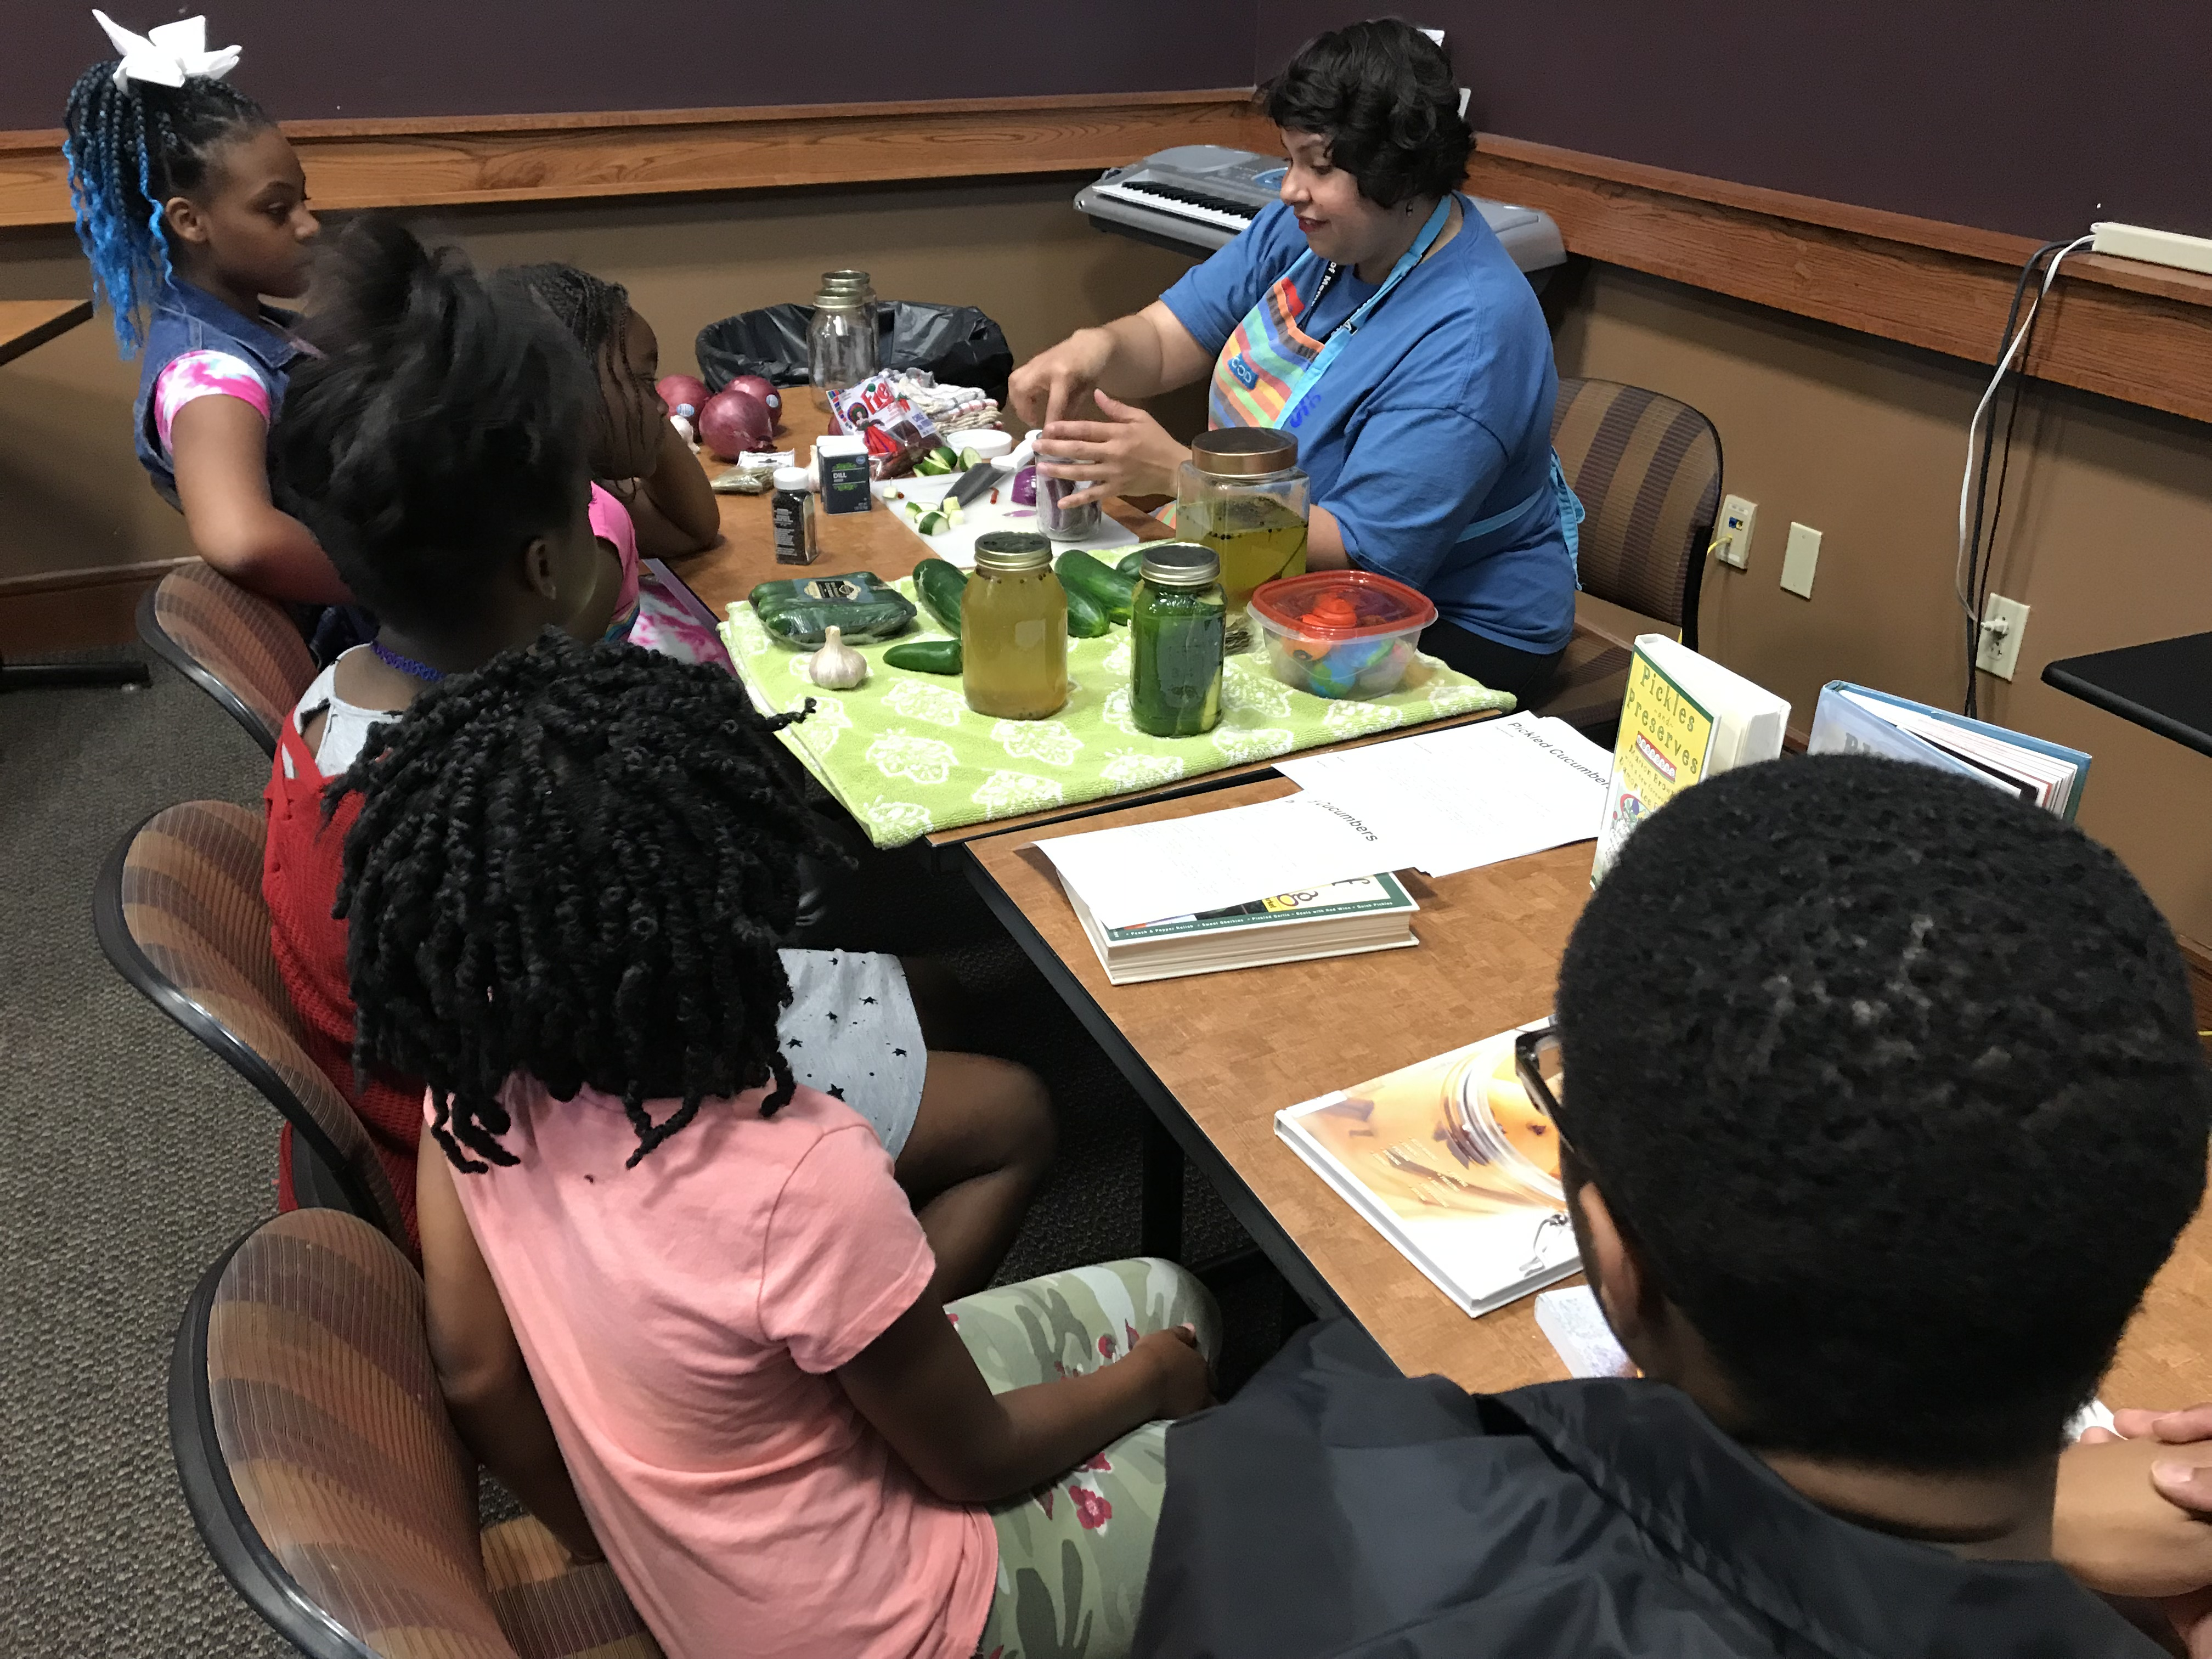 Melissa Sierra, Connect Crew manager for the Memphis Public Library system, talks about the process of making brine for a pickling class at the How-To-Festival, held at the Whitehaven Library on Saturday, April 27. (Kim Coleman)